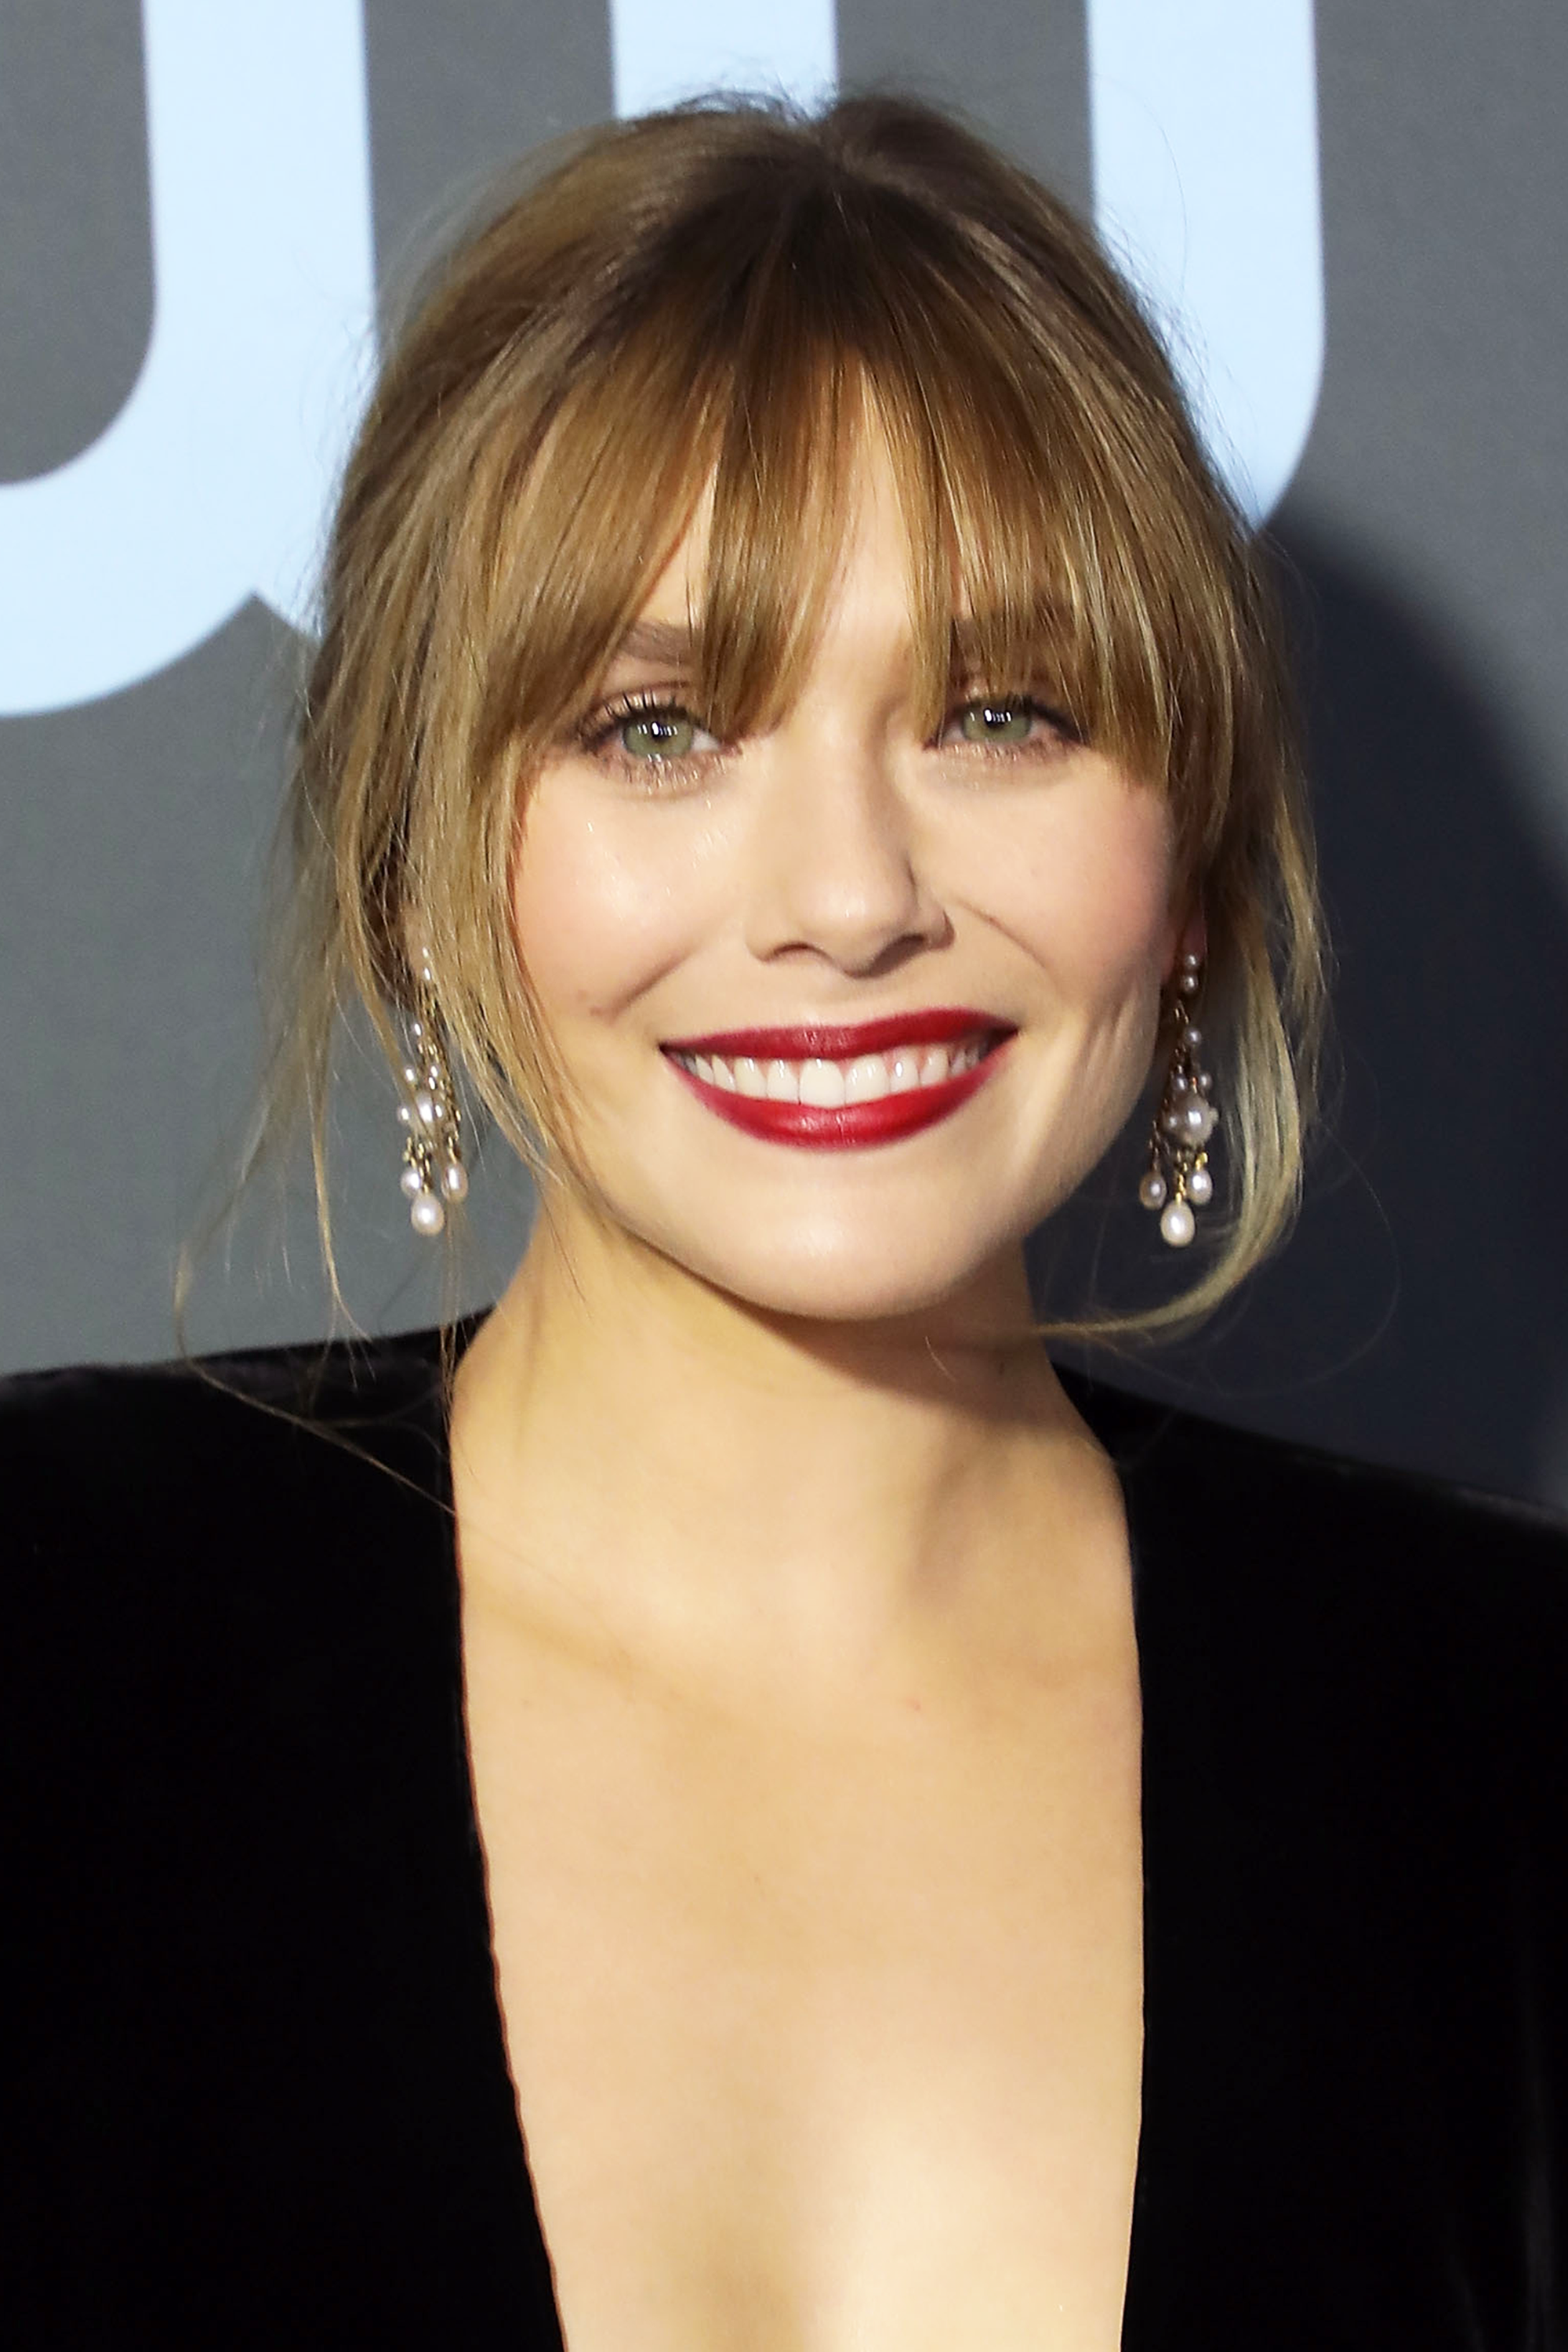 Types Of Bangs Haircut Styles That Are Trendy For 2019